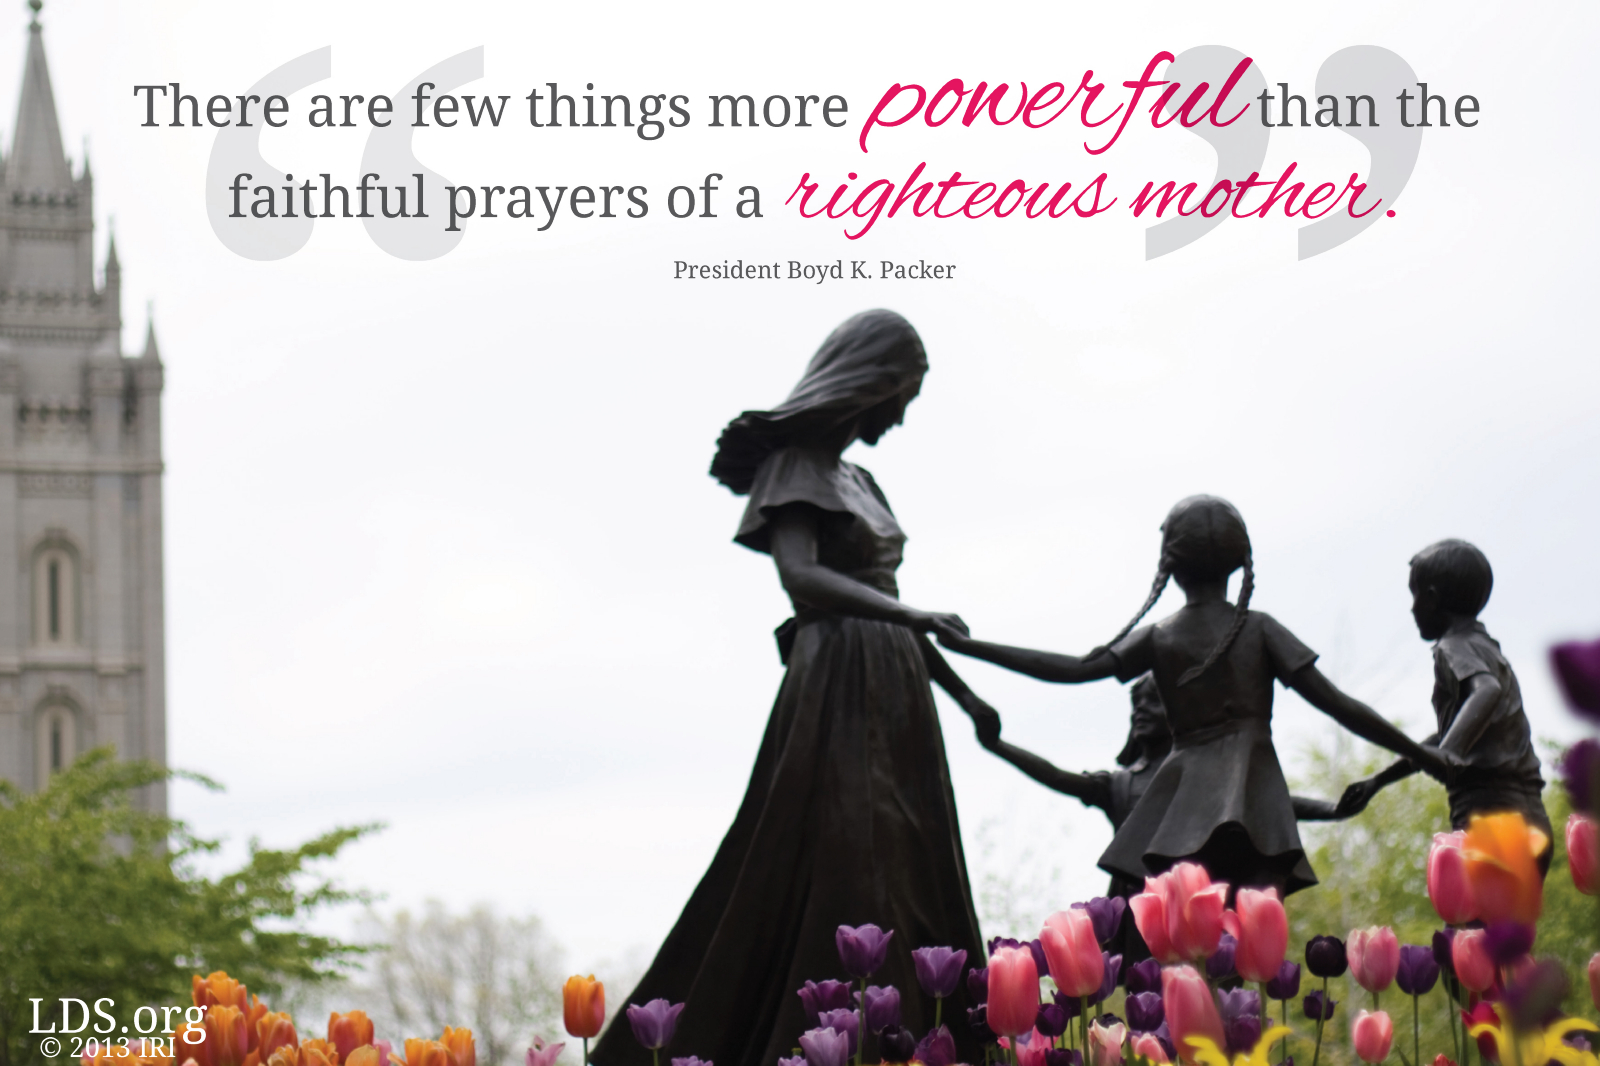 Righteous Mother